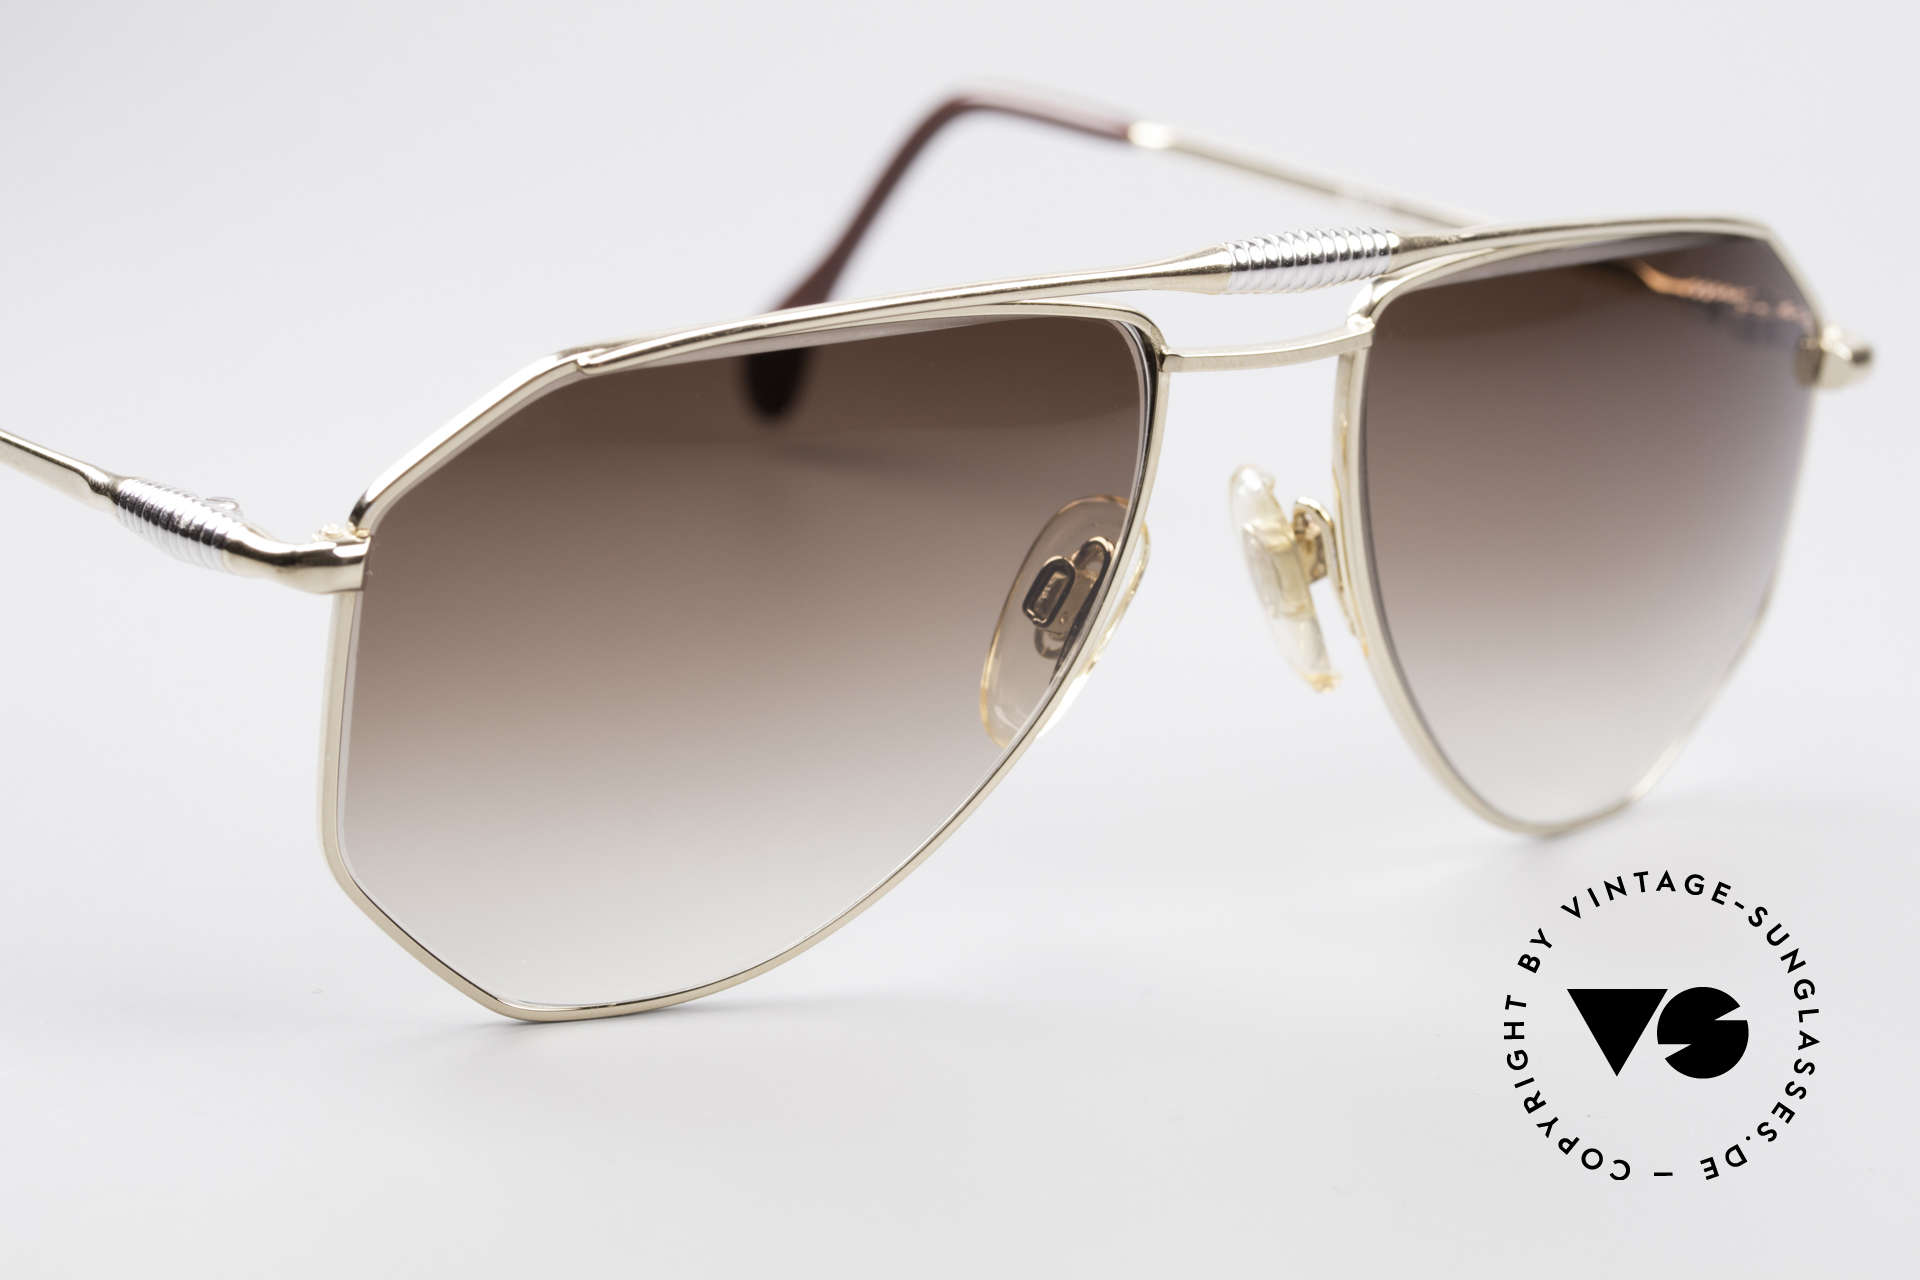 Zollitsch Cadre 120 Medium 80's Vintage Shades, NO retro shades, but a 30 years old original, M size 56/18, Made for Men